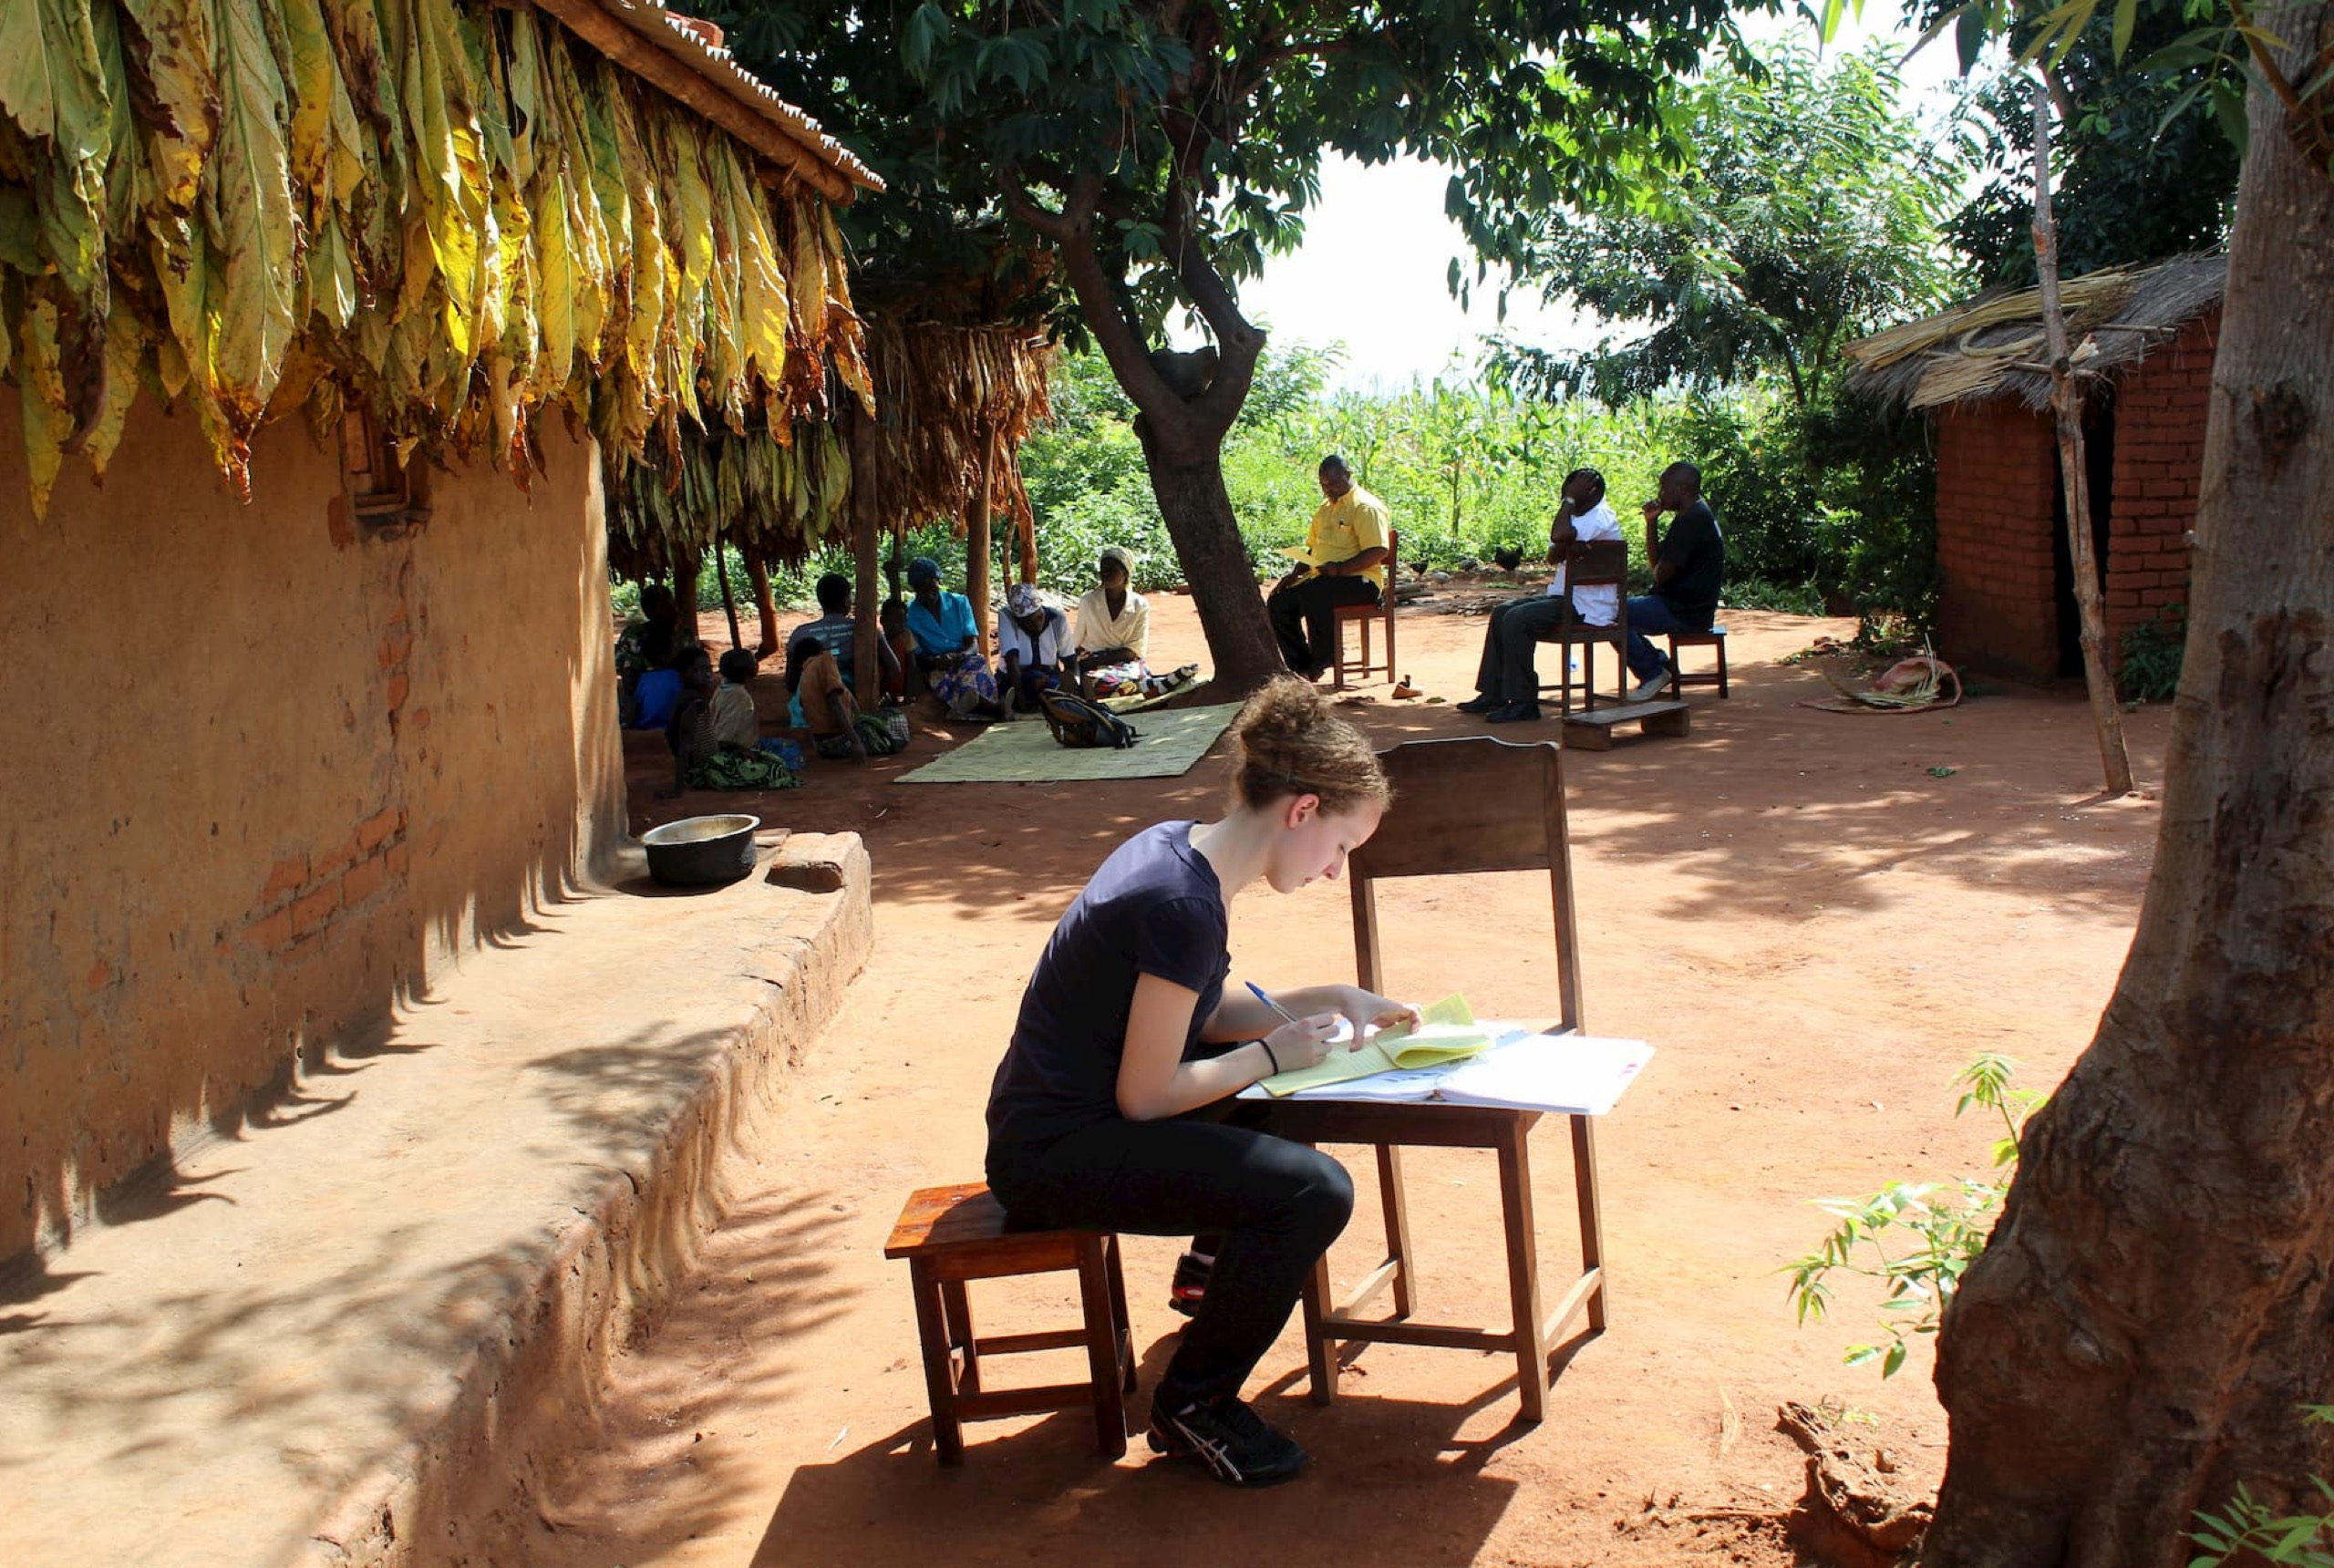 A woman in a dark-colored shirt is sitting on a stool and writing into a notepad outside. People are gathered around, some sitting on the ground and others sitting in chairs, further from the camera.